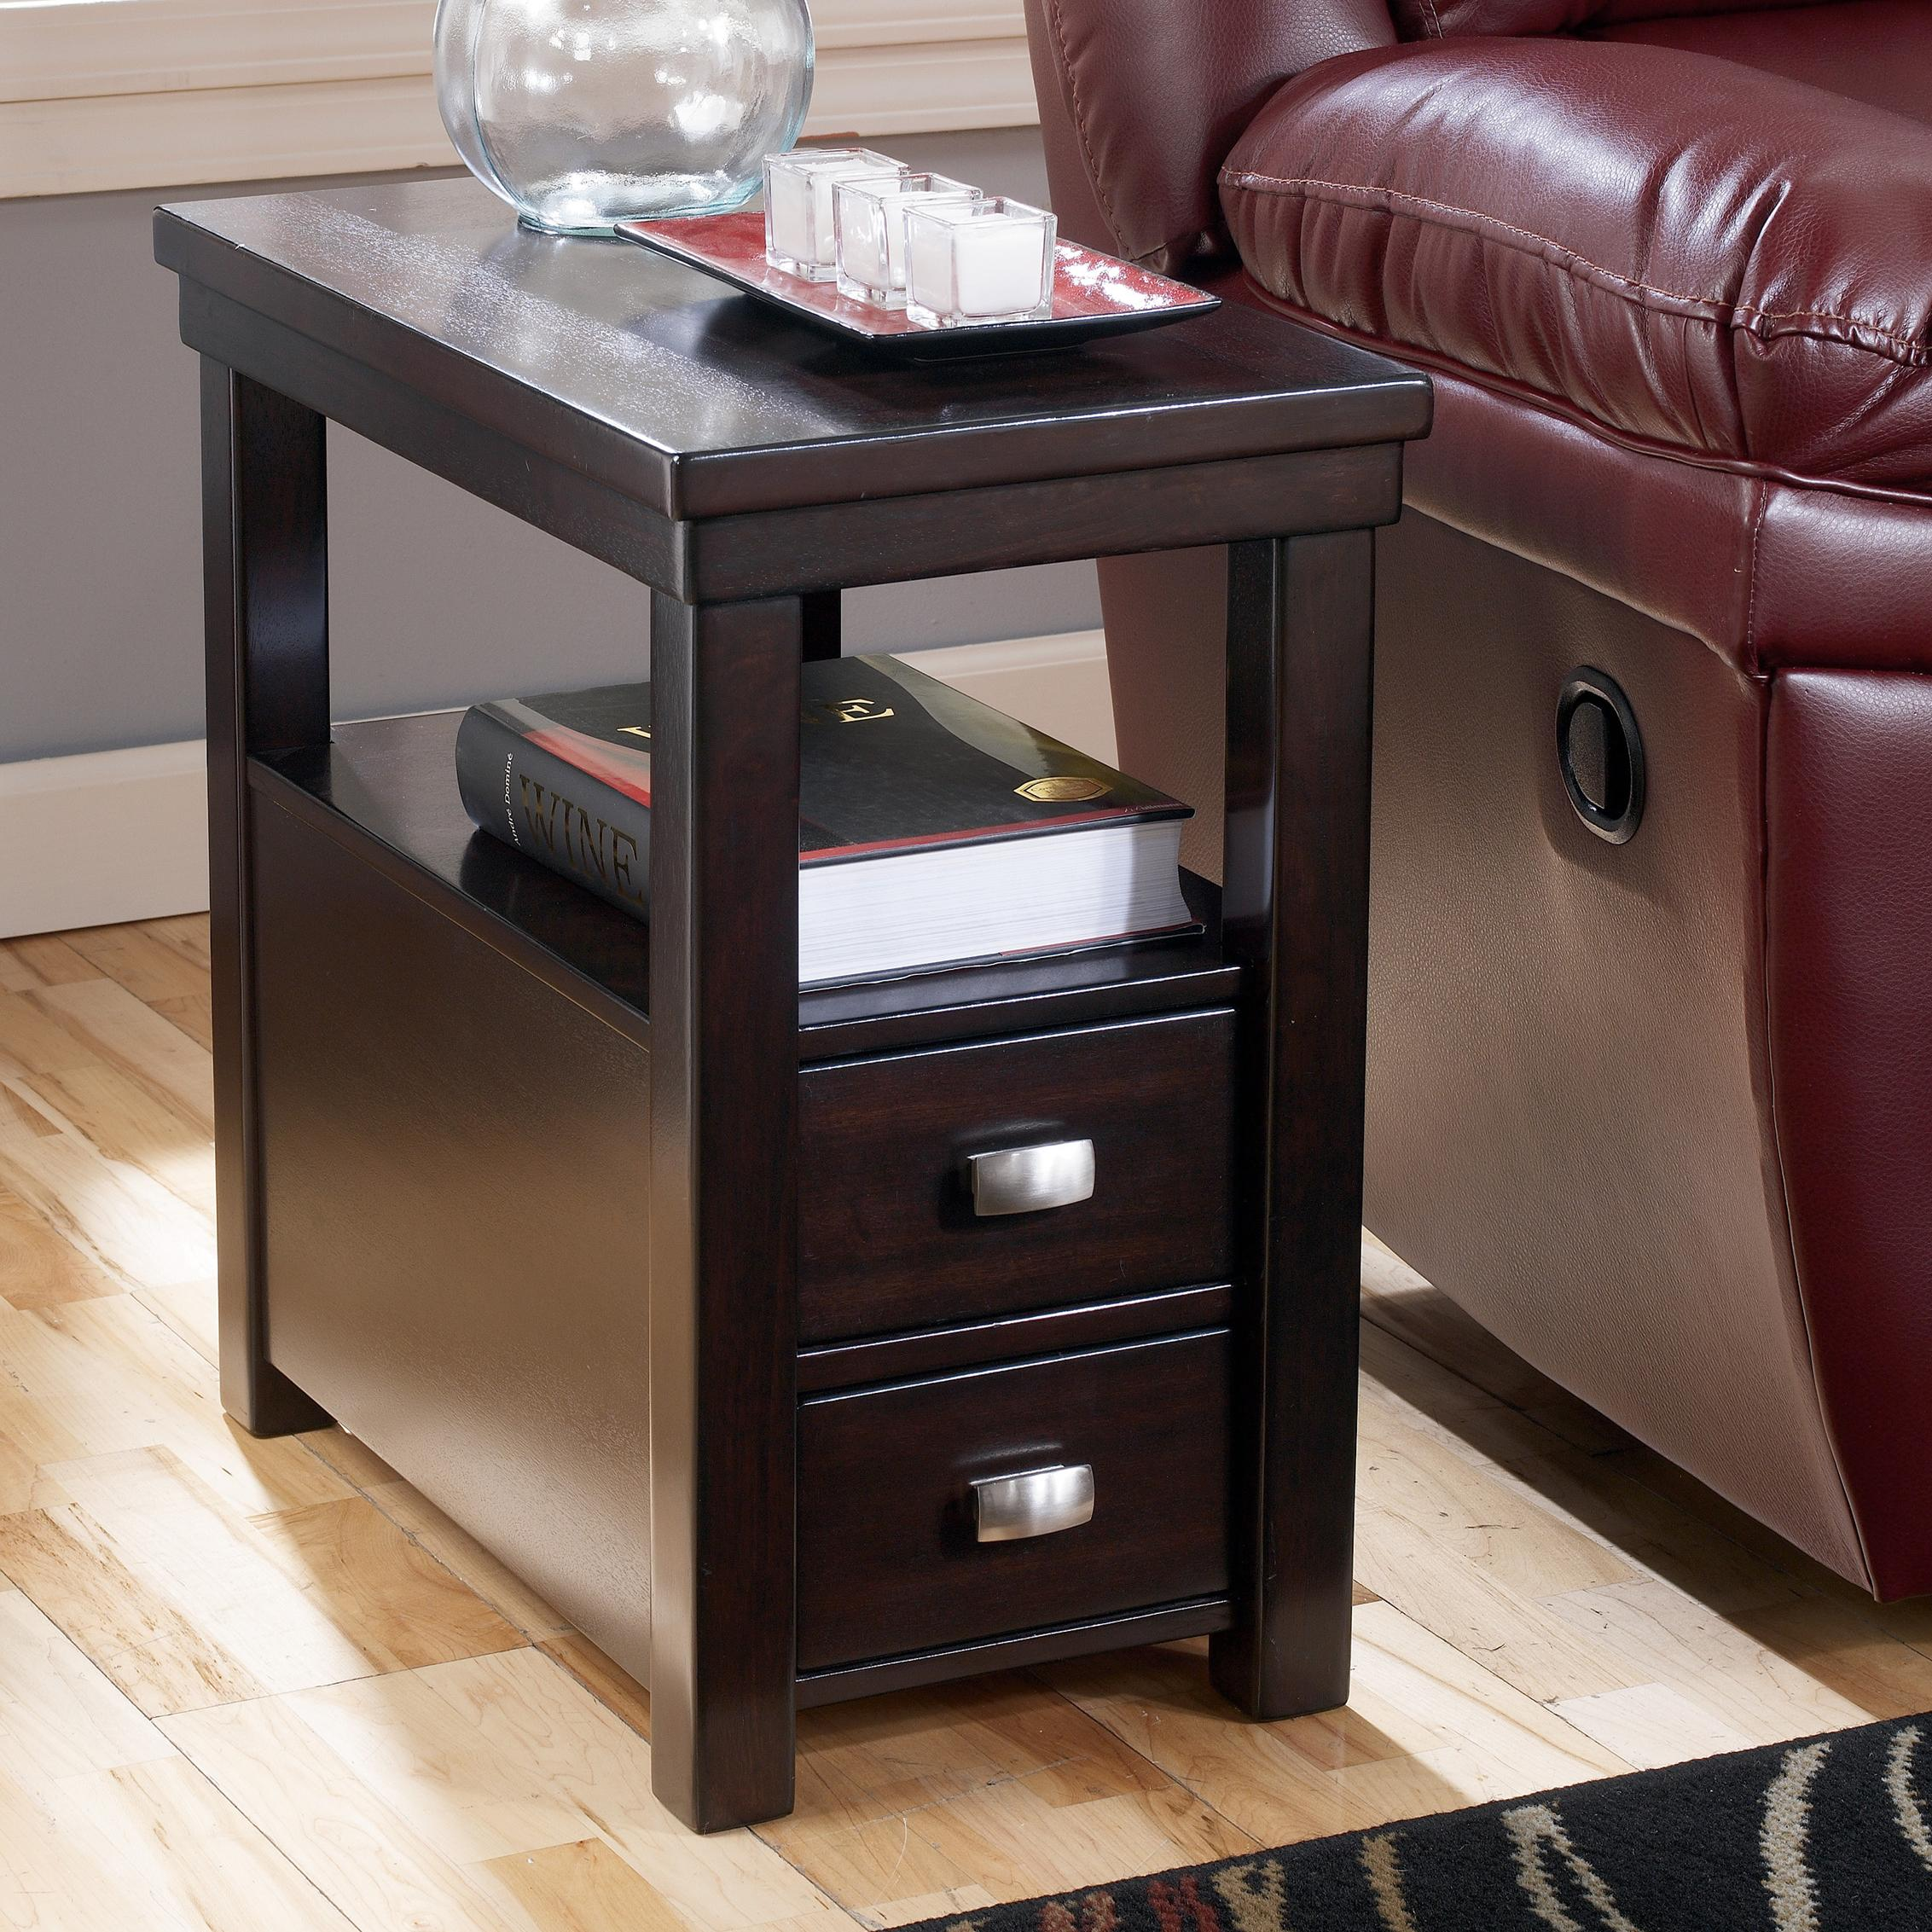 Black End Tables With Drawer Hadley Chairside End Table With 2 Drawers 1 Shelf By Signature Design By Ashley At Rotmans